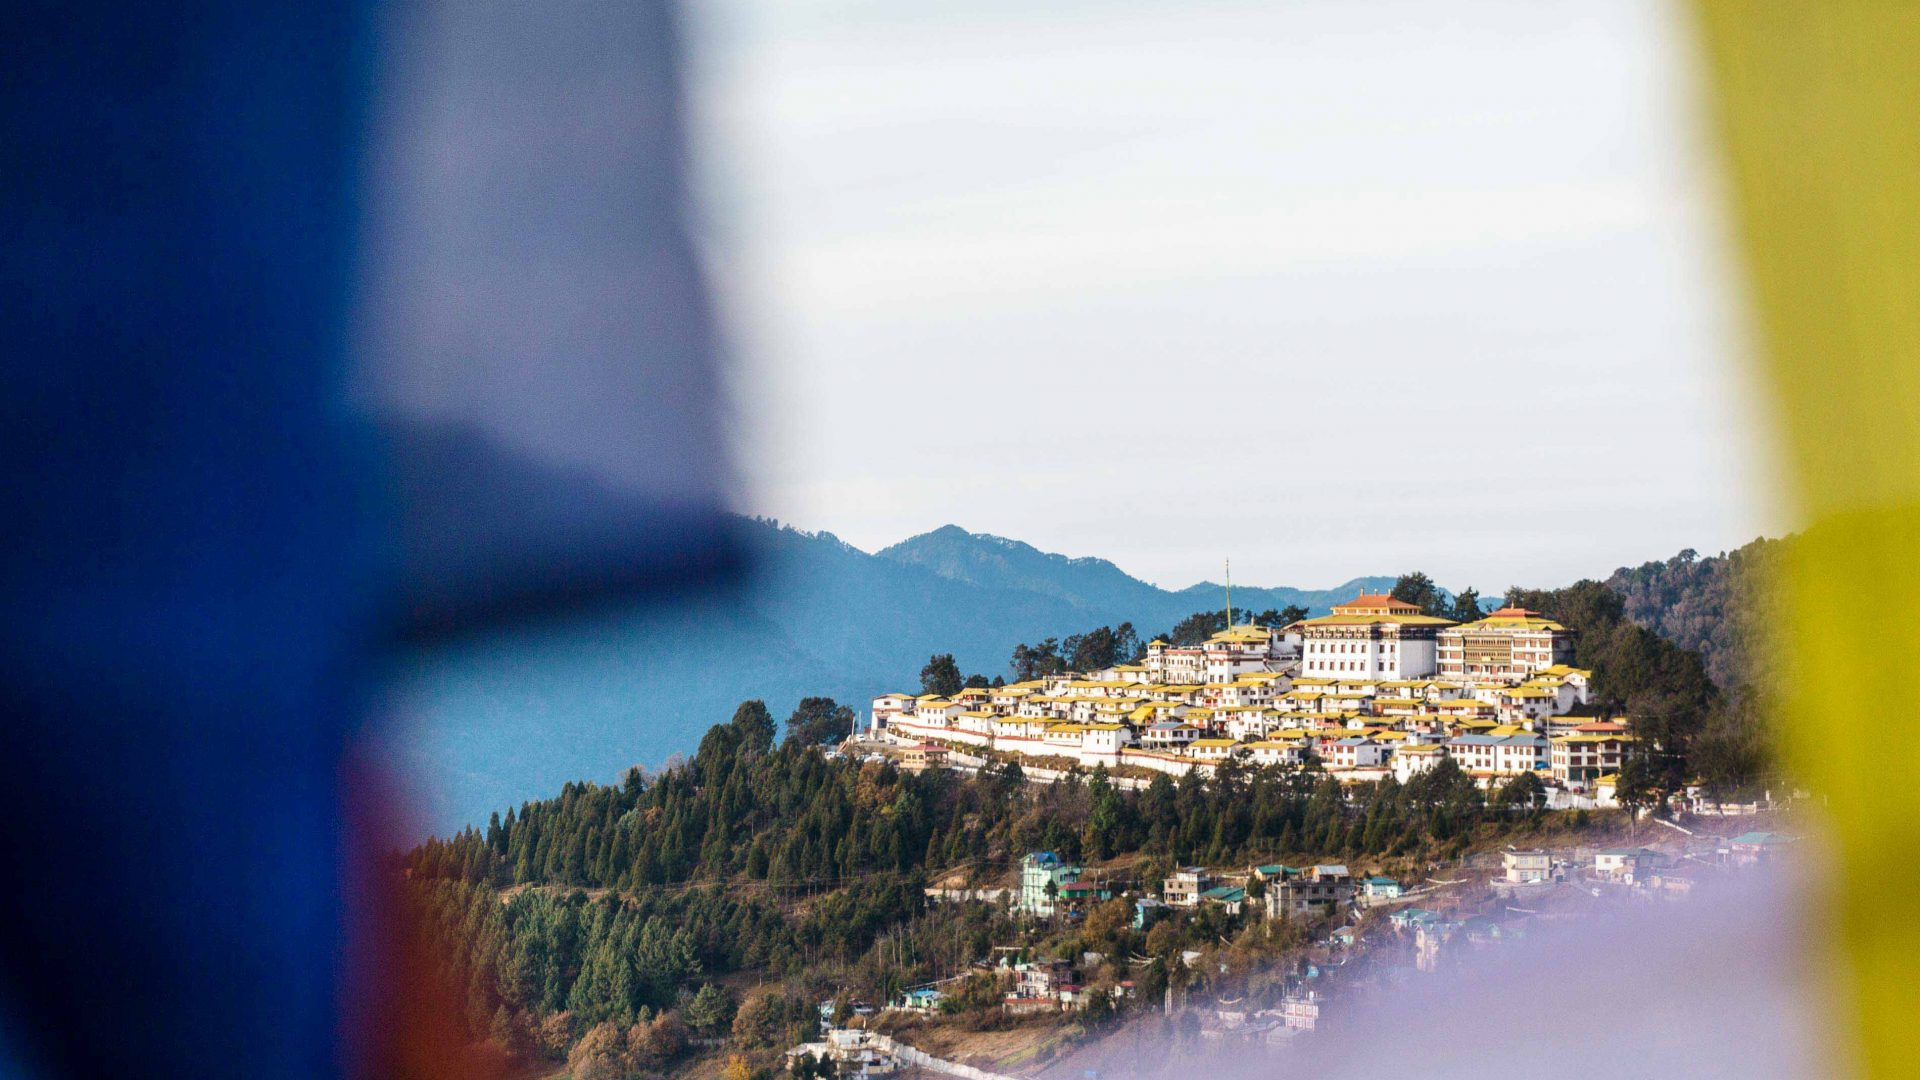 A view of the Tawang Monastery through Buddhist prayer flags in Arunachal Pradesh, India.